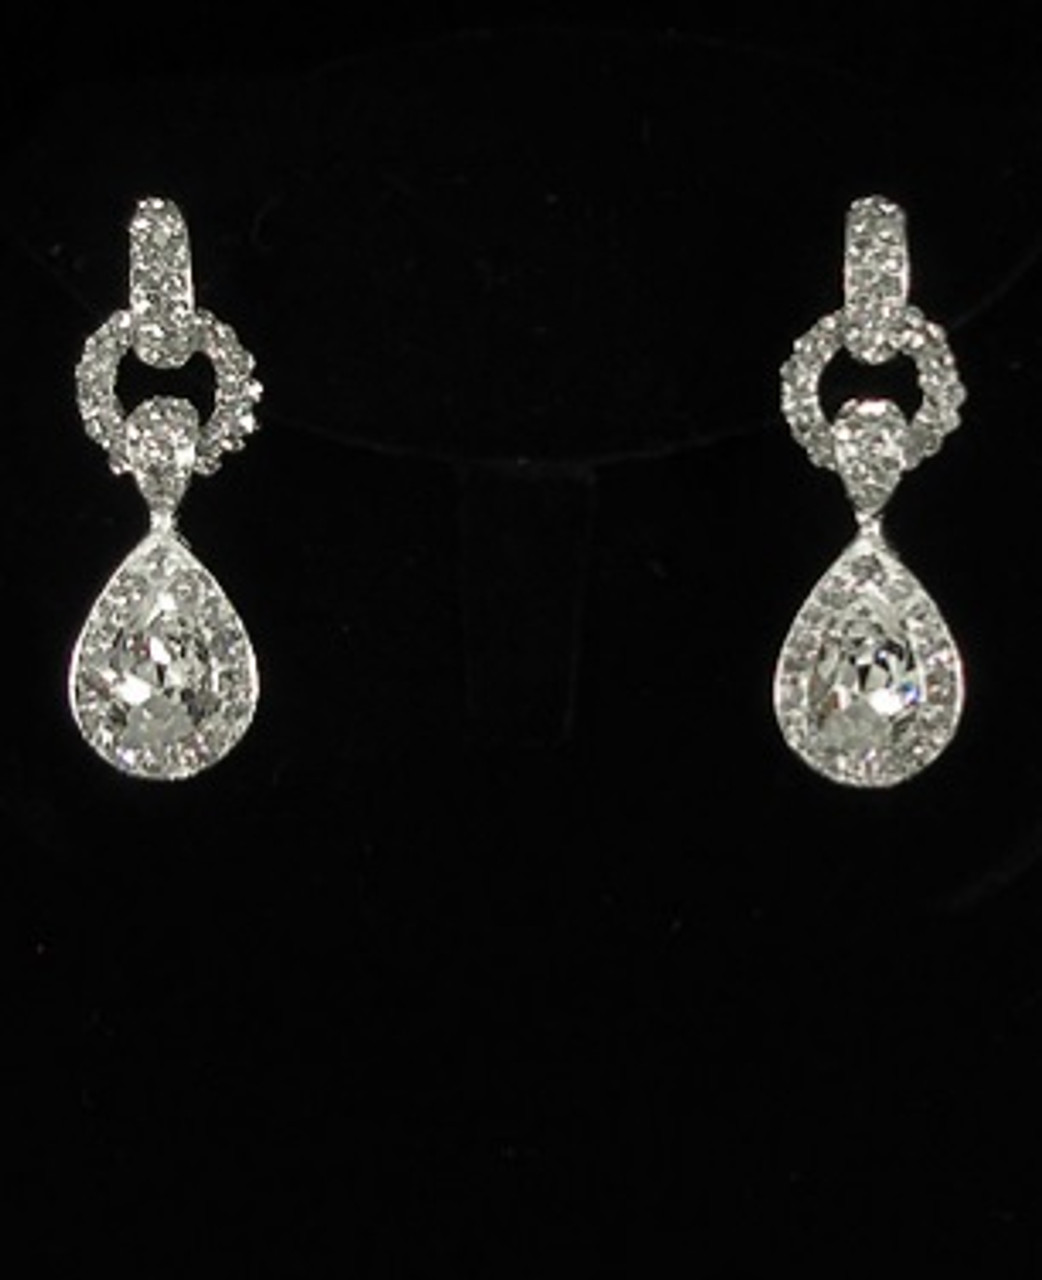 Bel aire bridal accessories earrings ea225 wedding jewelry for Bel aire bridal jewelry